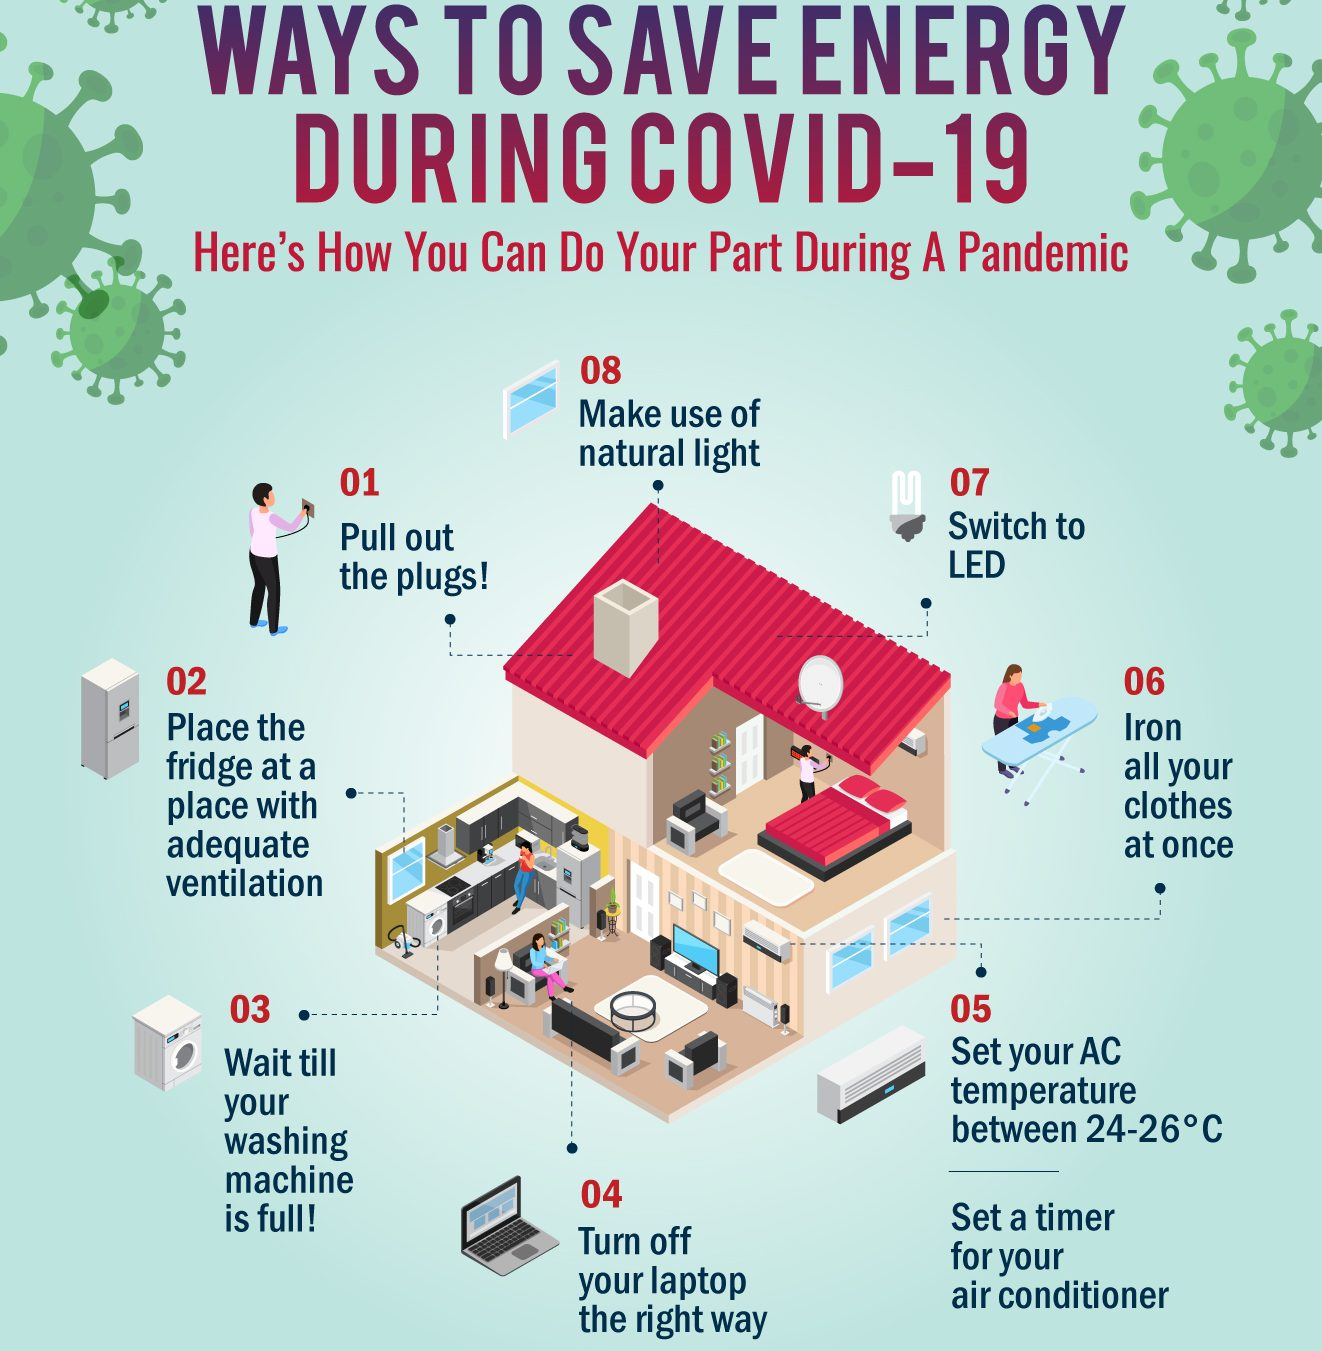 #stayathome tips to save energy during COVID-19 lockdown